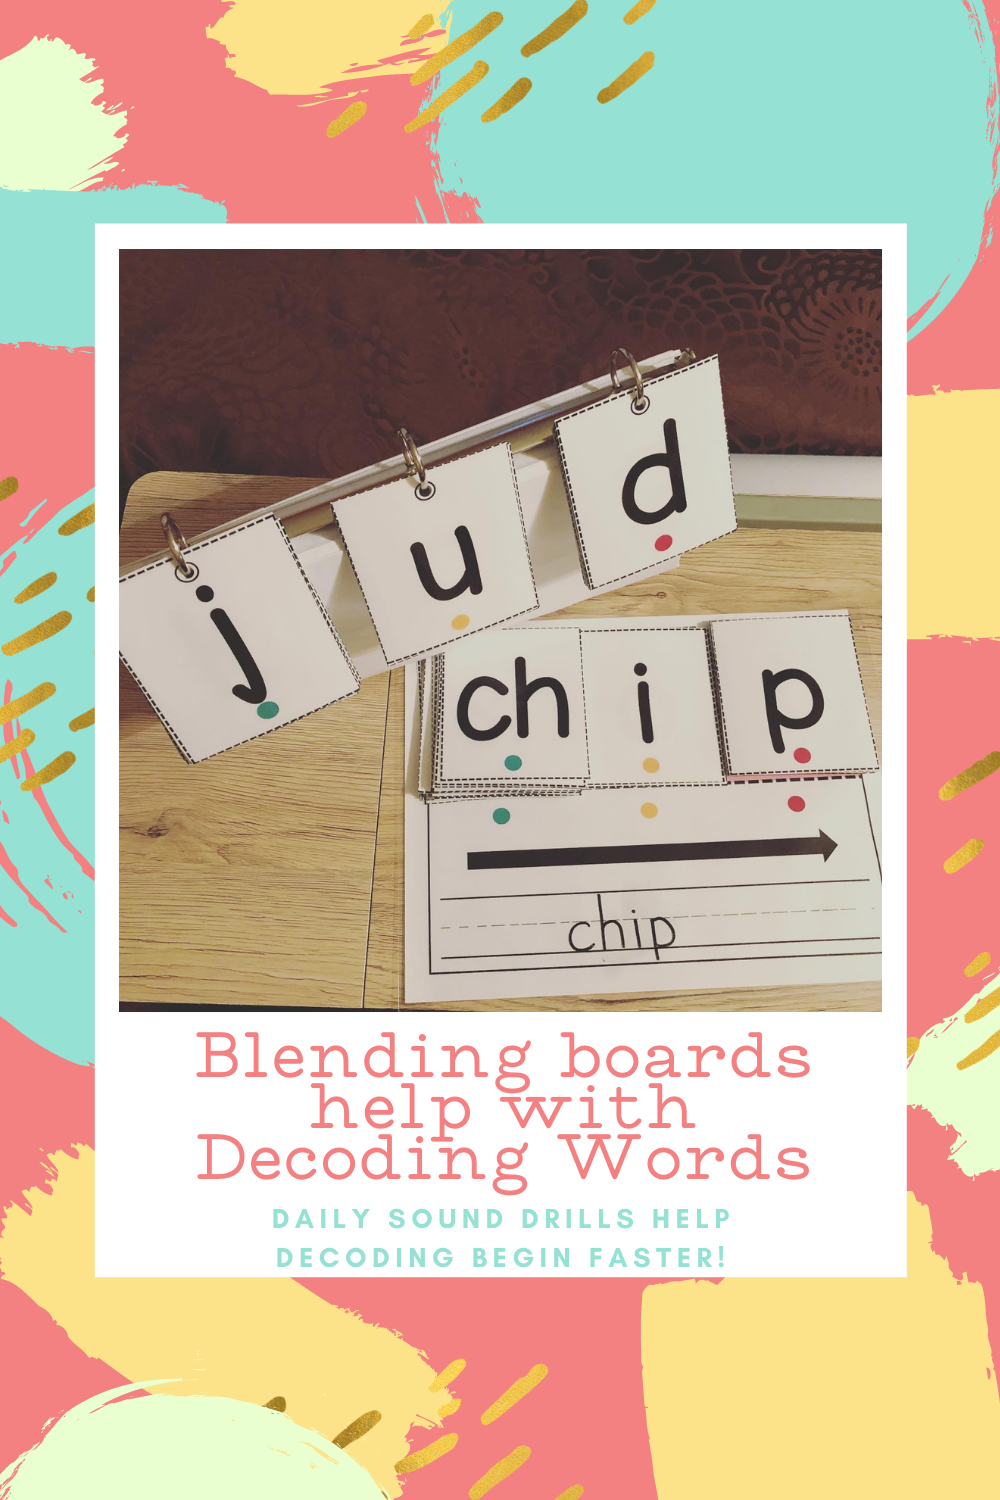 Blending boards help decoding and fluency